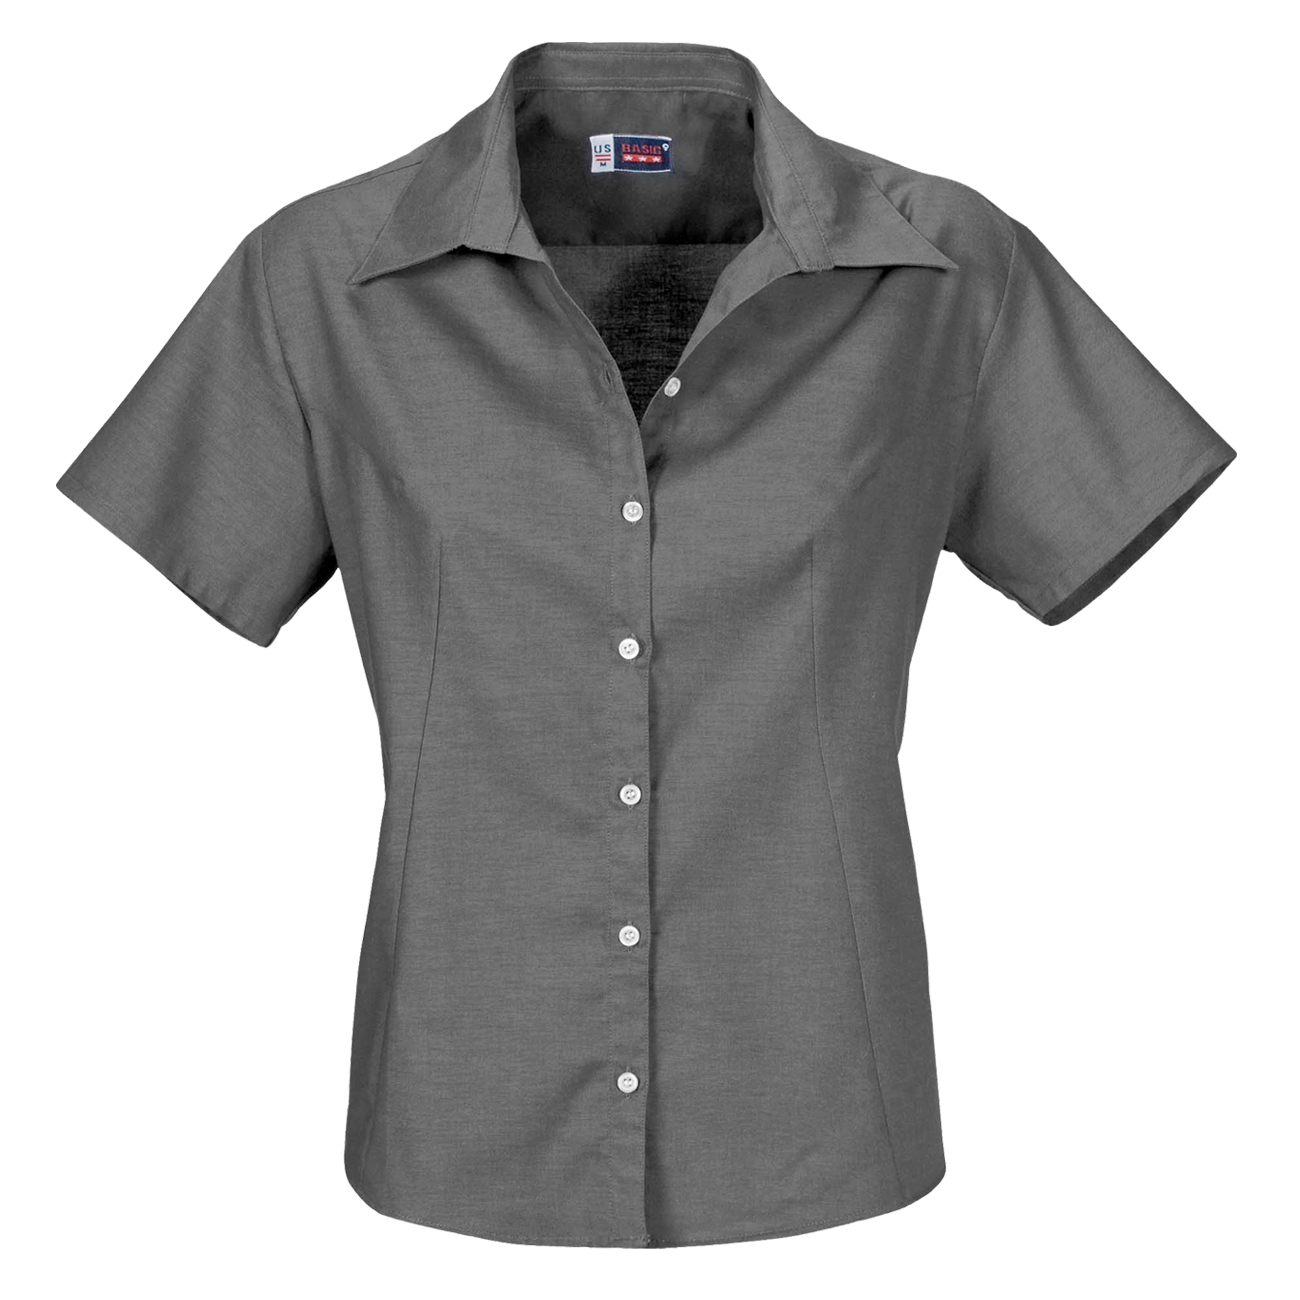 af71aa28 Ladies Womens US Basic Classic Casual Grey Work Shirt Short Sleeve Open Neck